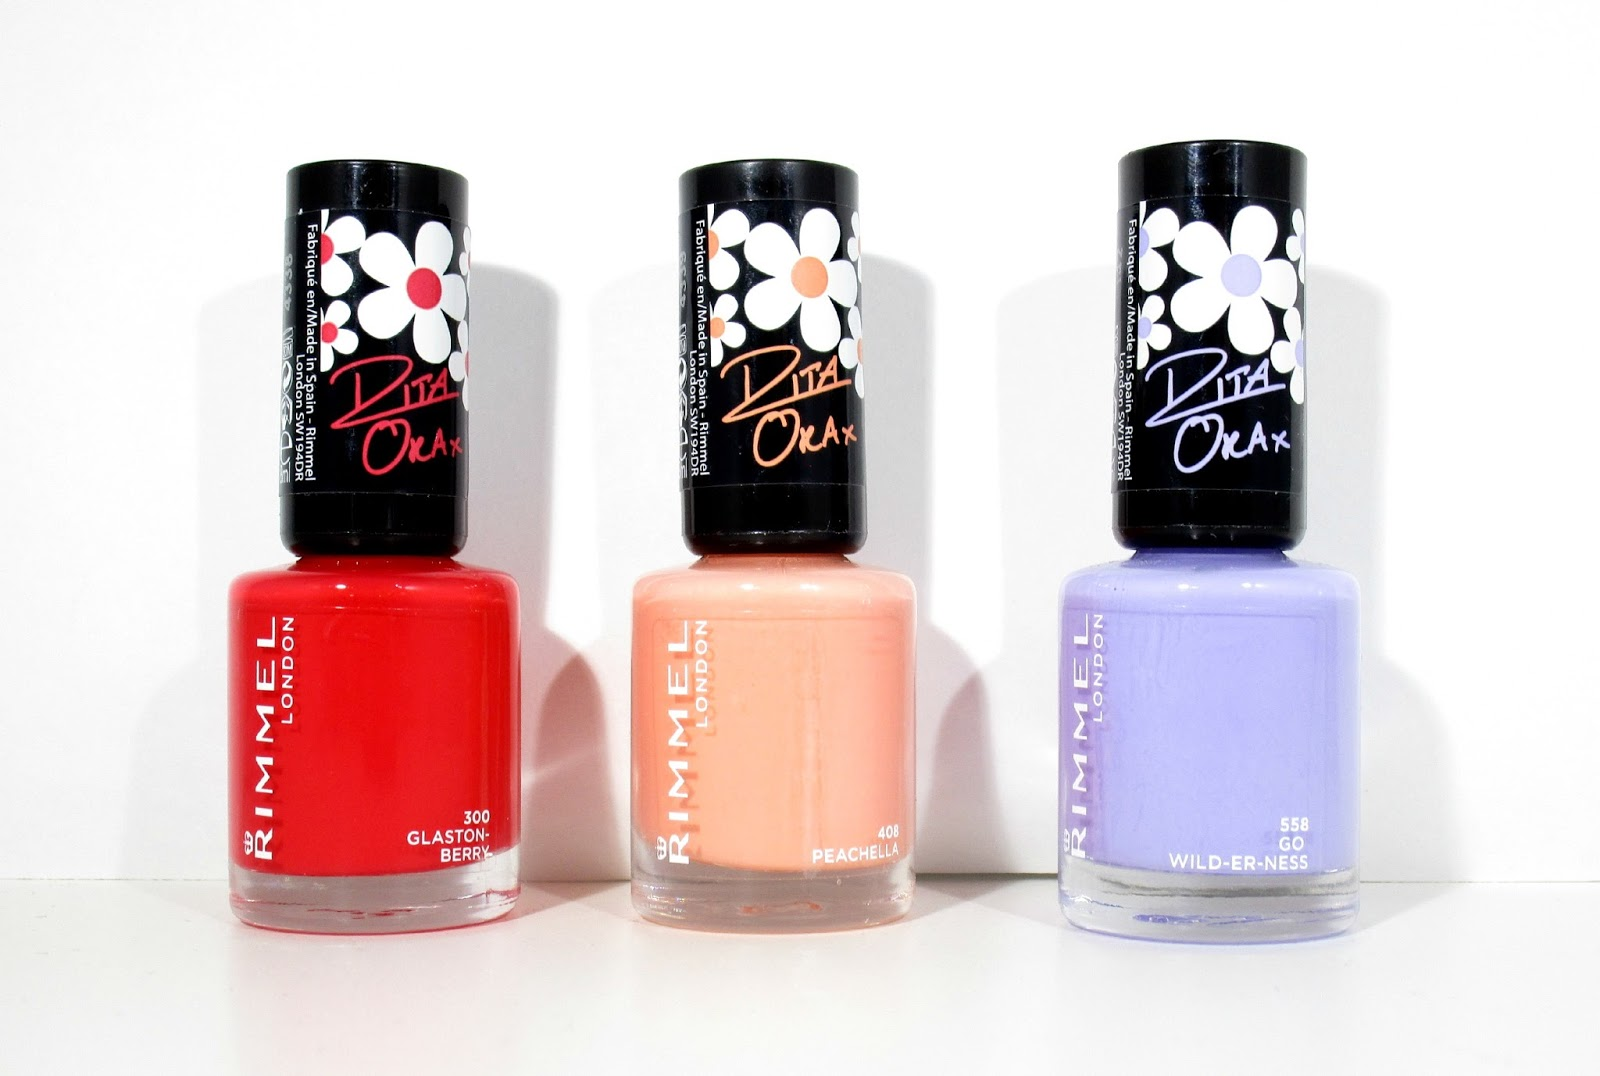 Colourfest 60 Seconds Nail Polish Range By Rita Ora The Limited Edition Collection Developed Is Inspired Festivals And Also Contains An